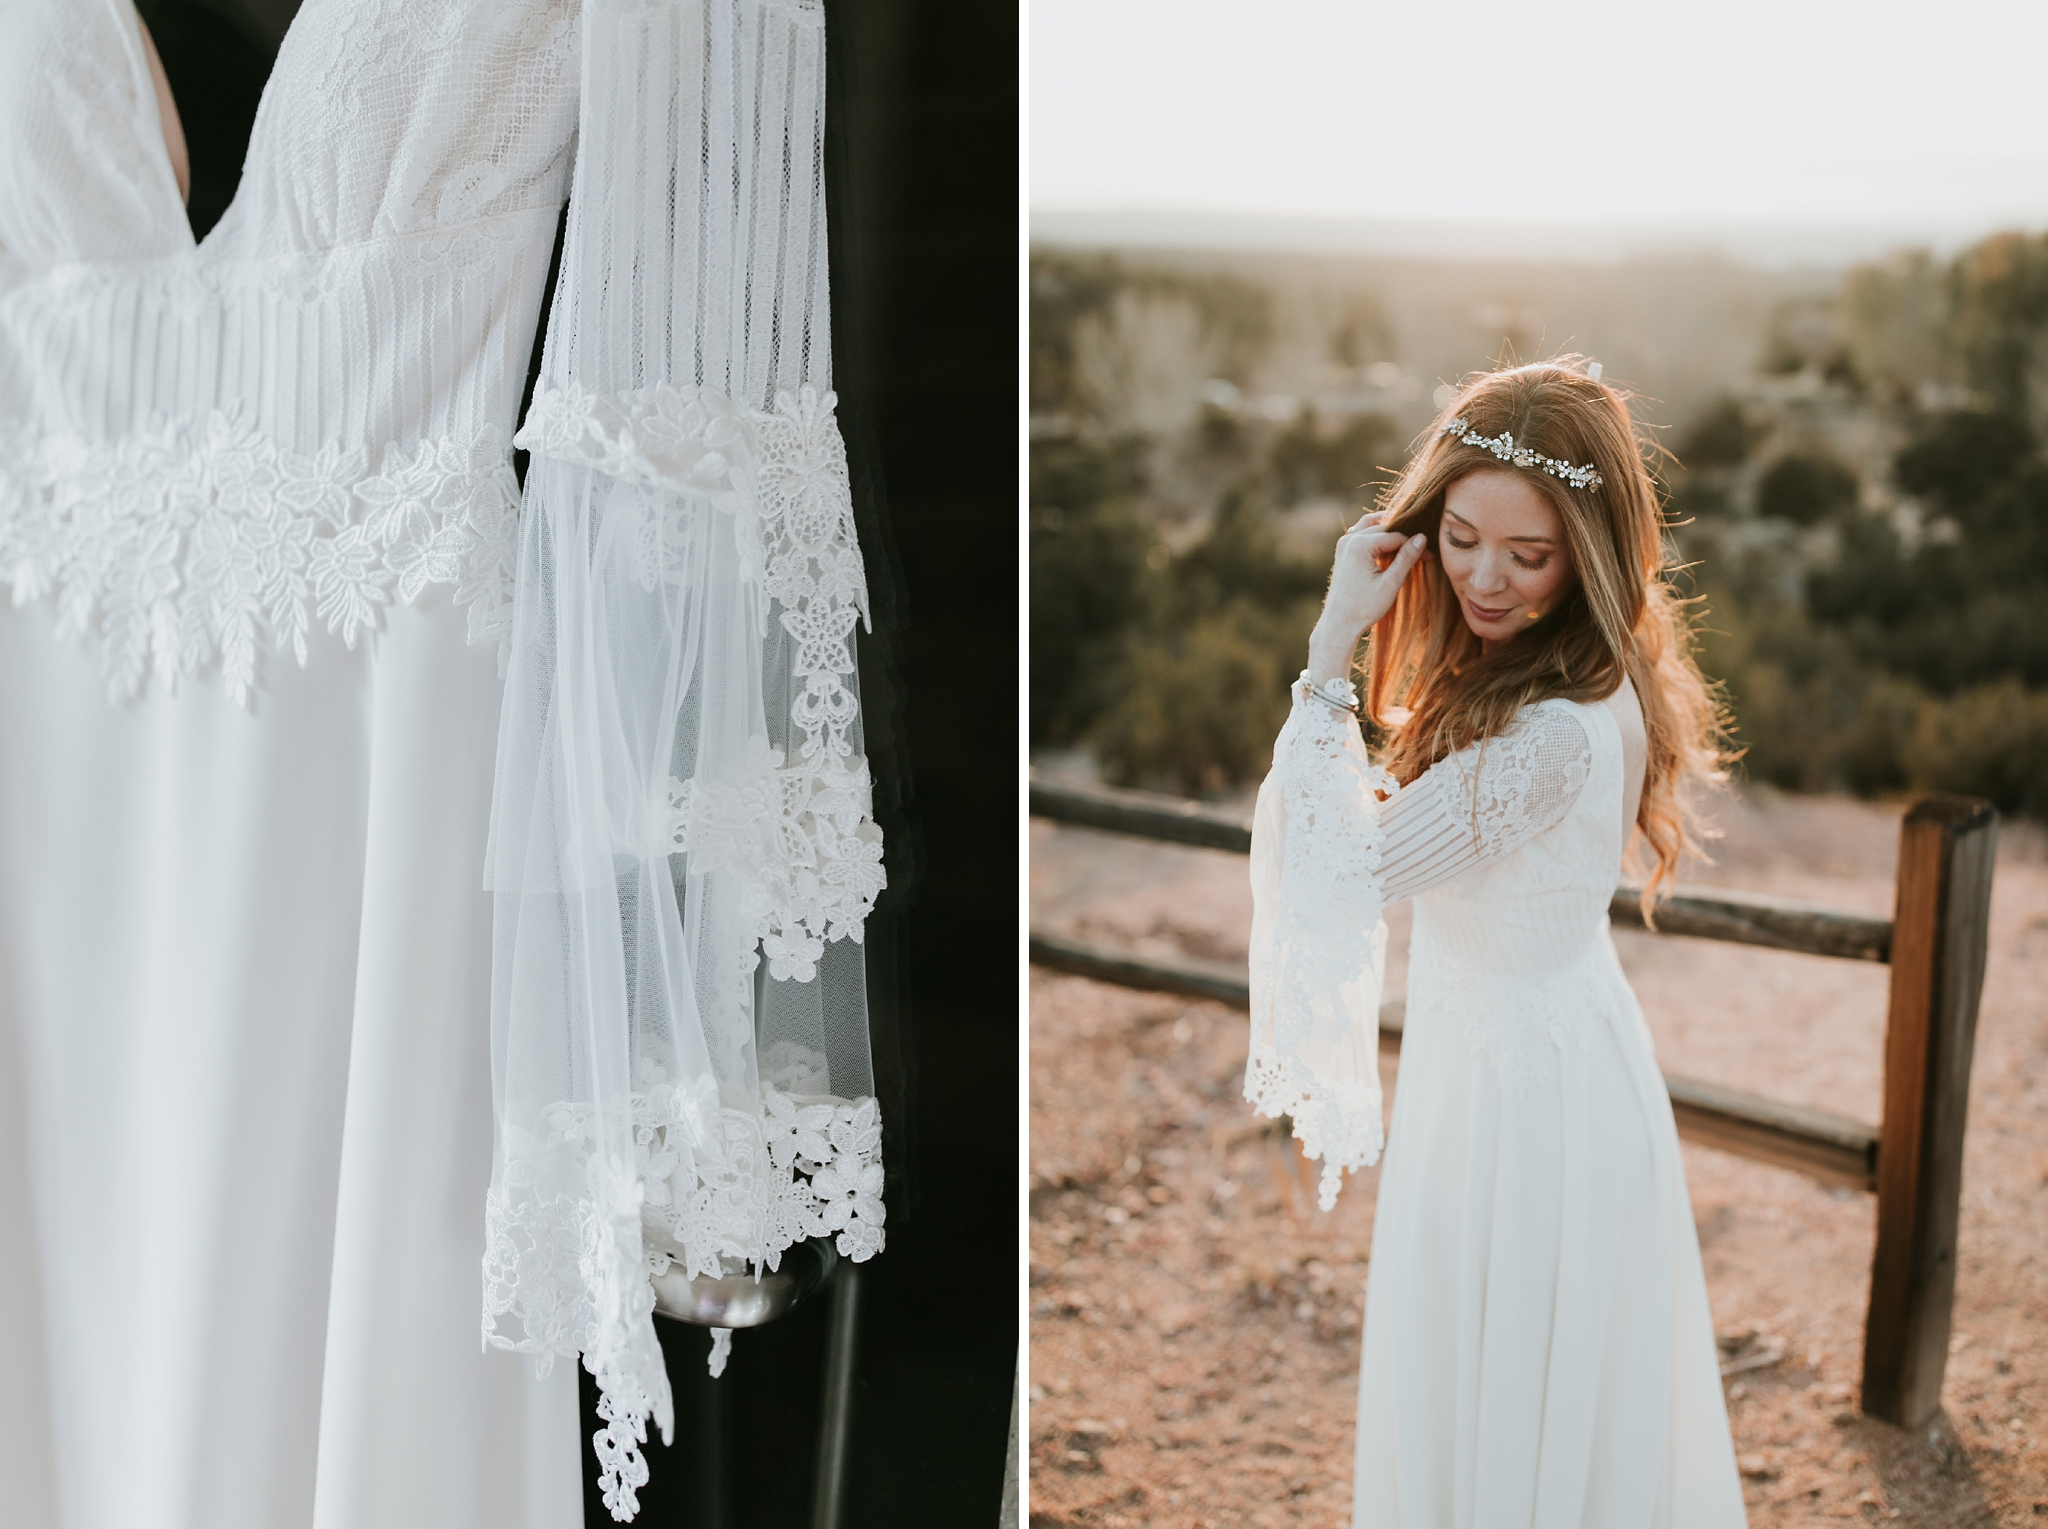 Alicia+lucia+photography+-+albuquerque+wedding+photographer+-+santa+fe+wedding+photography+-+new+mexico+wedding+photographer+-+new+mexico+wedding+-+wedding+gowns+-+bridal+gowns+-+a+line+wedding+gown_0044.jpg